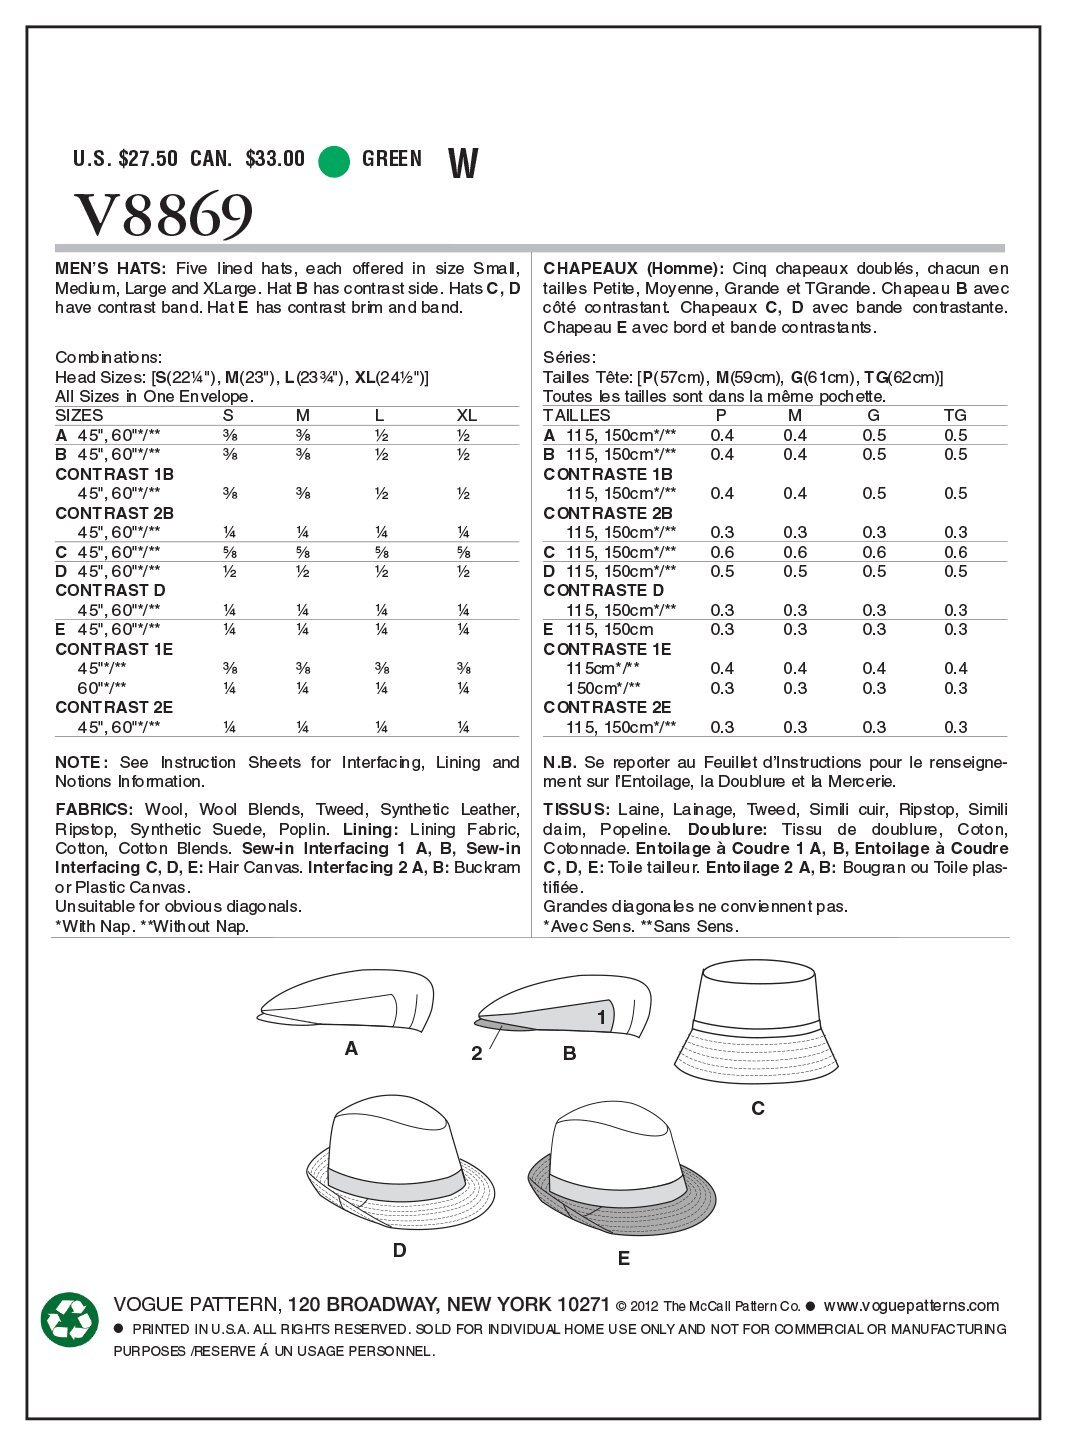 Vogue Patterns V8869 - Patrones de costura para sombreros de hombre ...